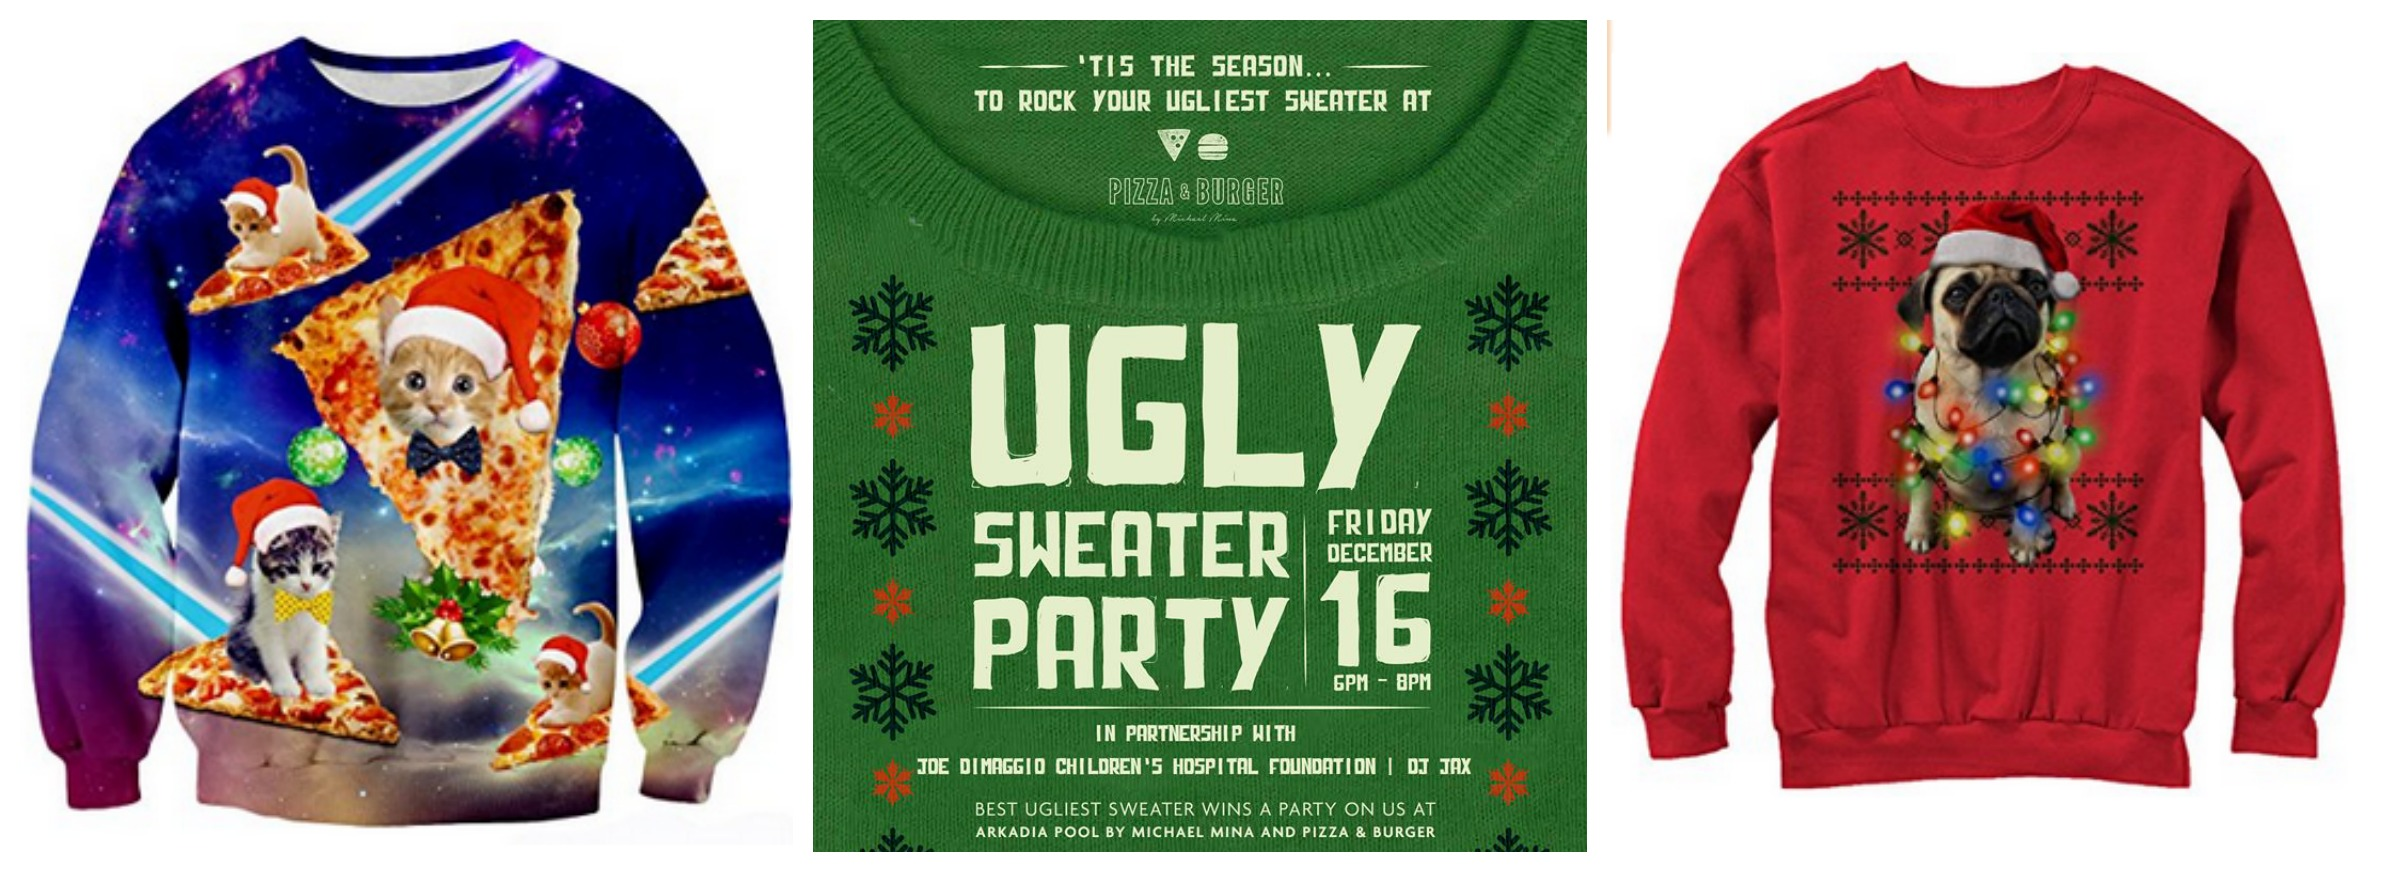 Ugly Sweater Party at Pizza & Burger Miami